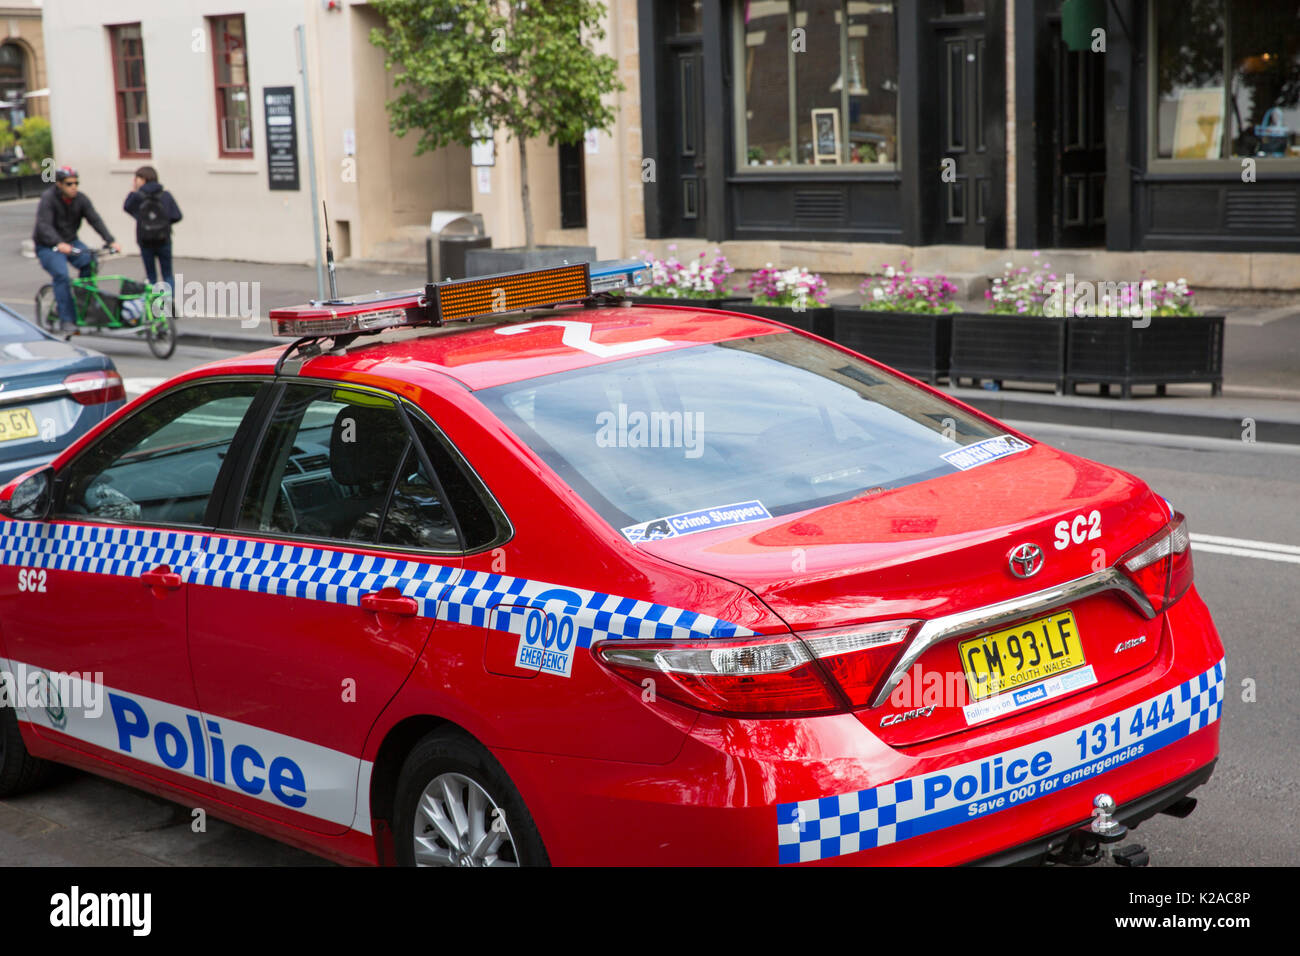 New South Wales police red vehicle police car parked in Sydney,Australia - Stock Image